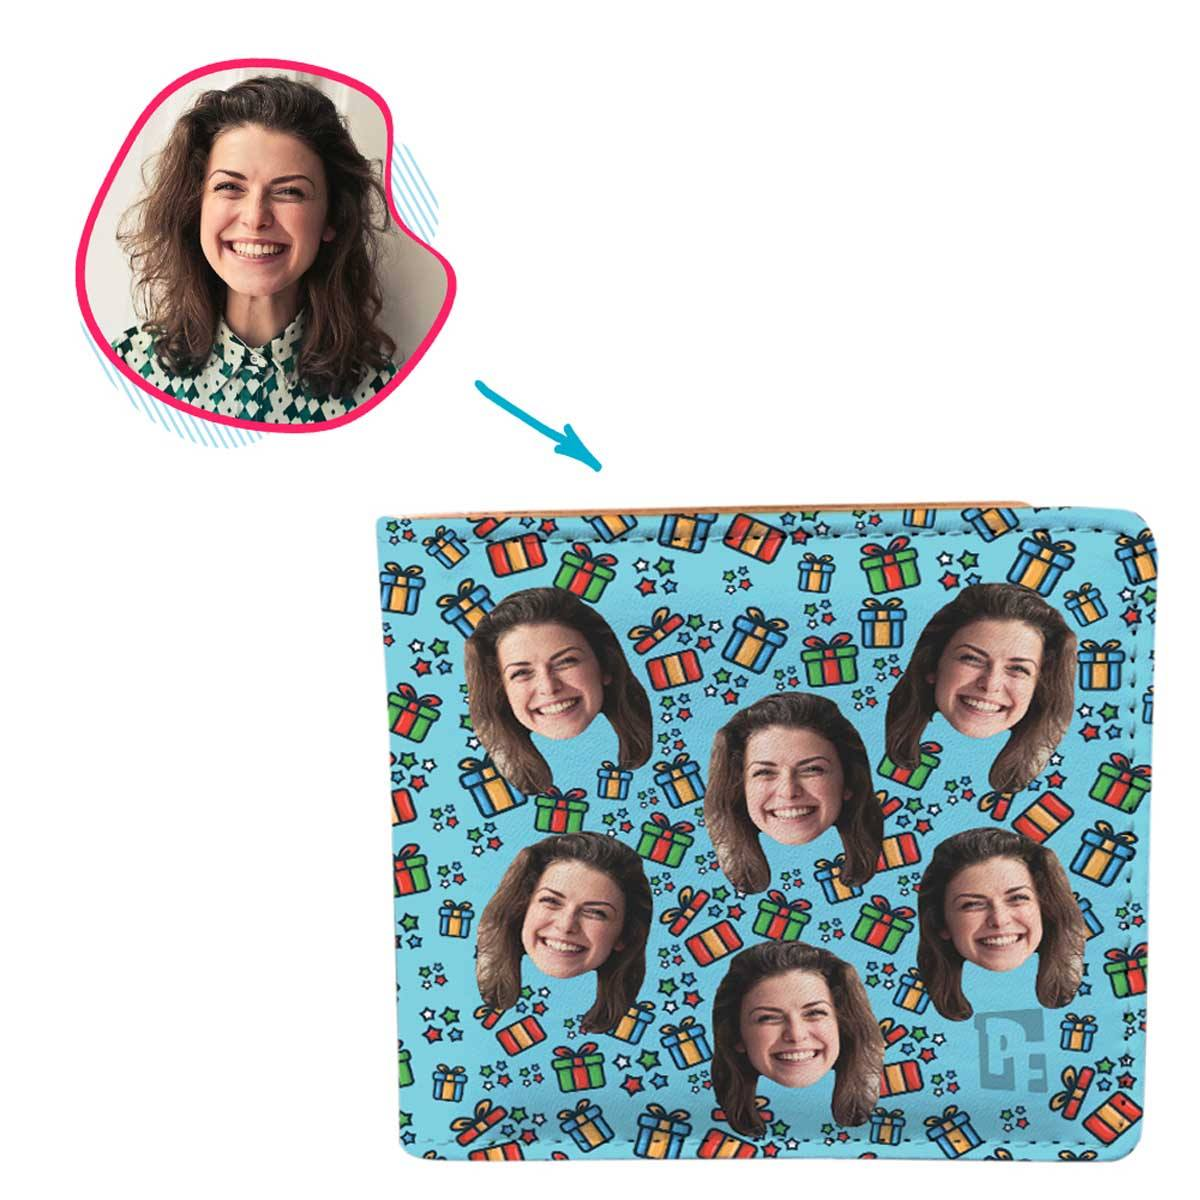 blue Gift Box wallet personalized with photo of face printed on it